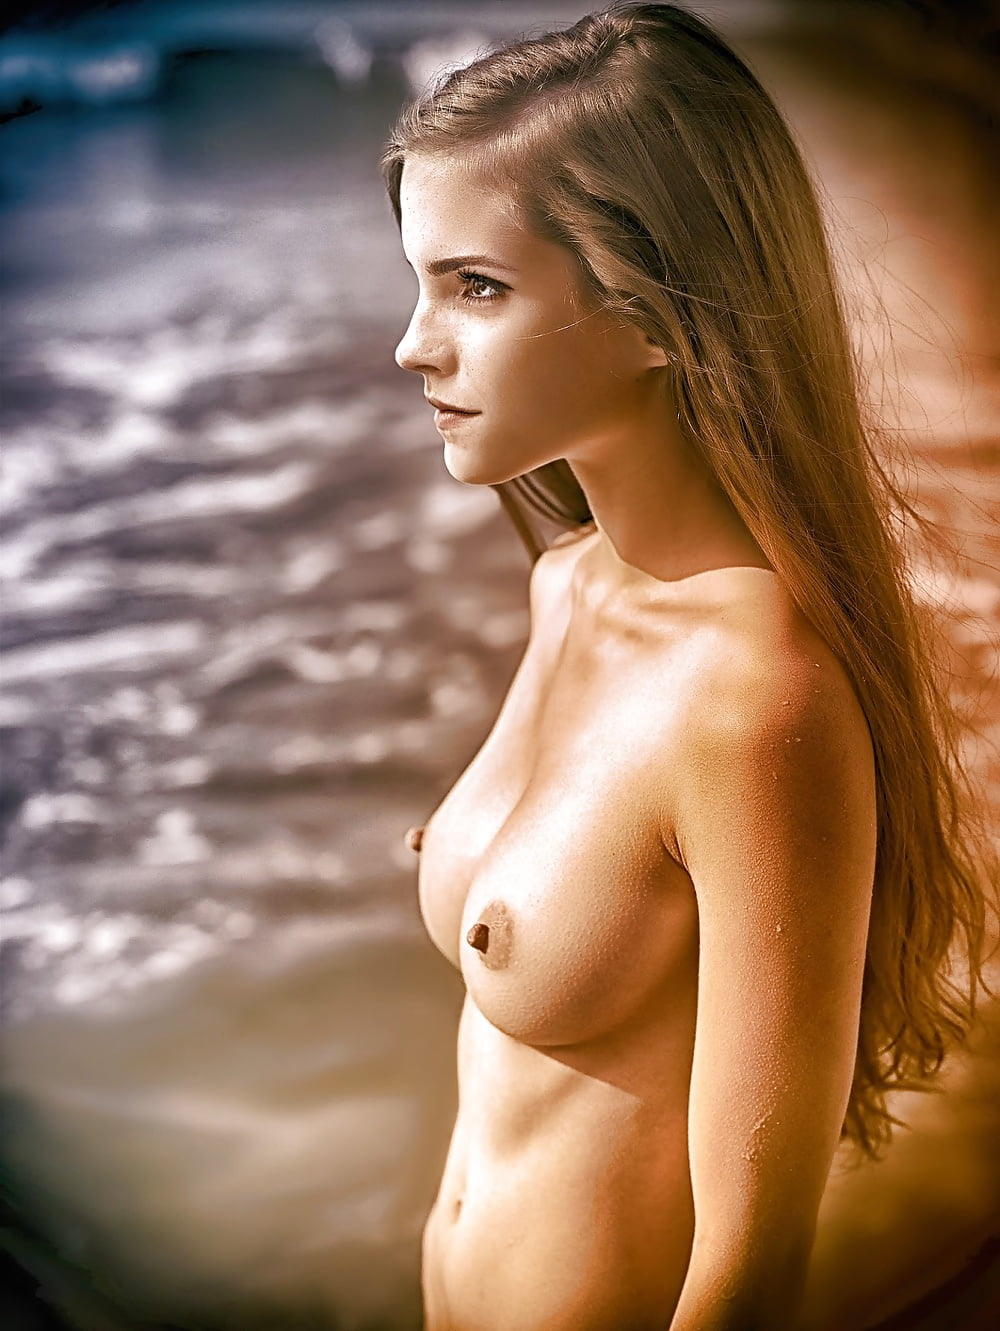 Kristin booth hot nudes